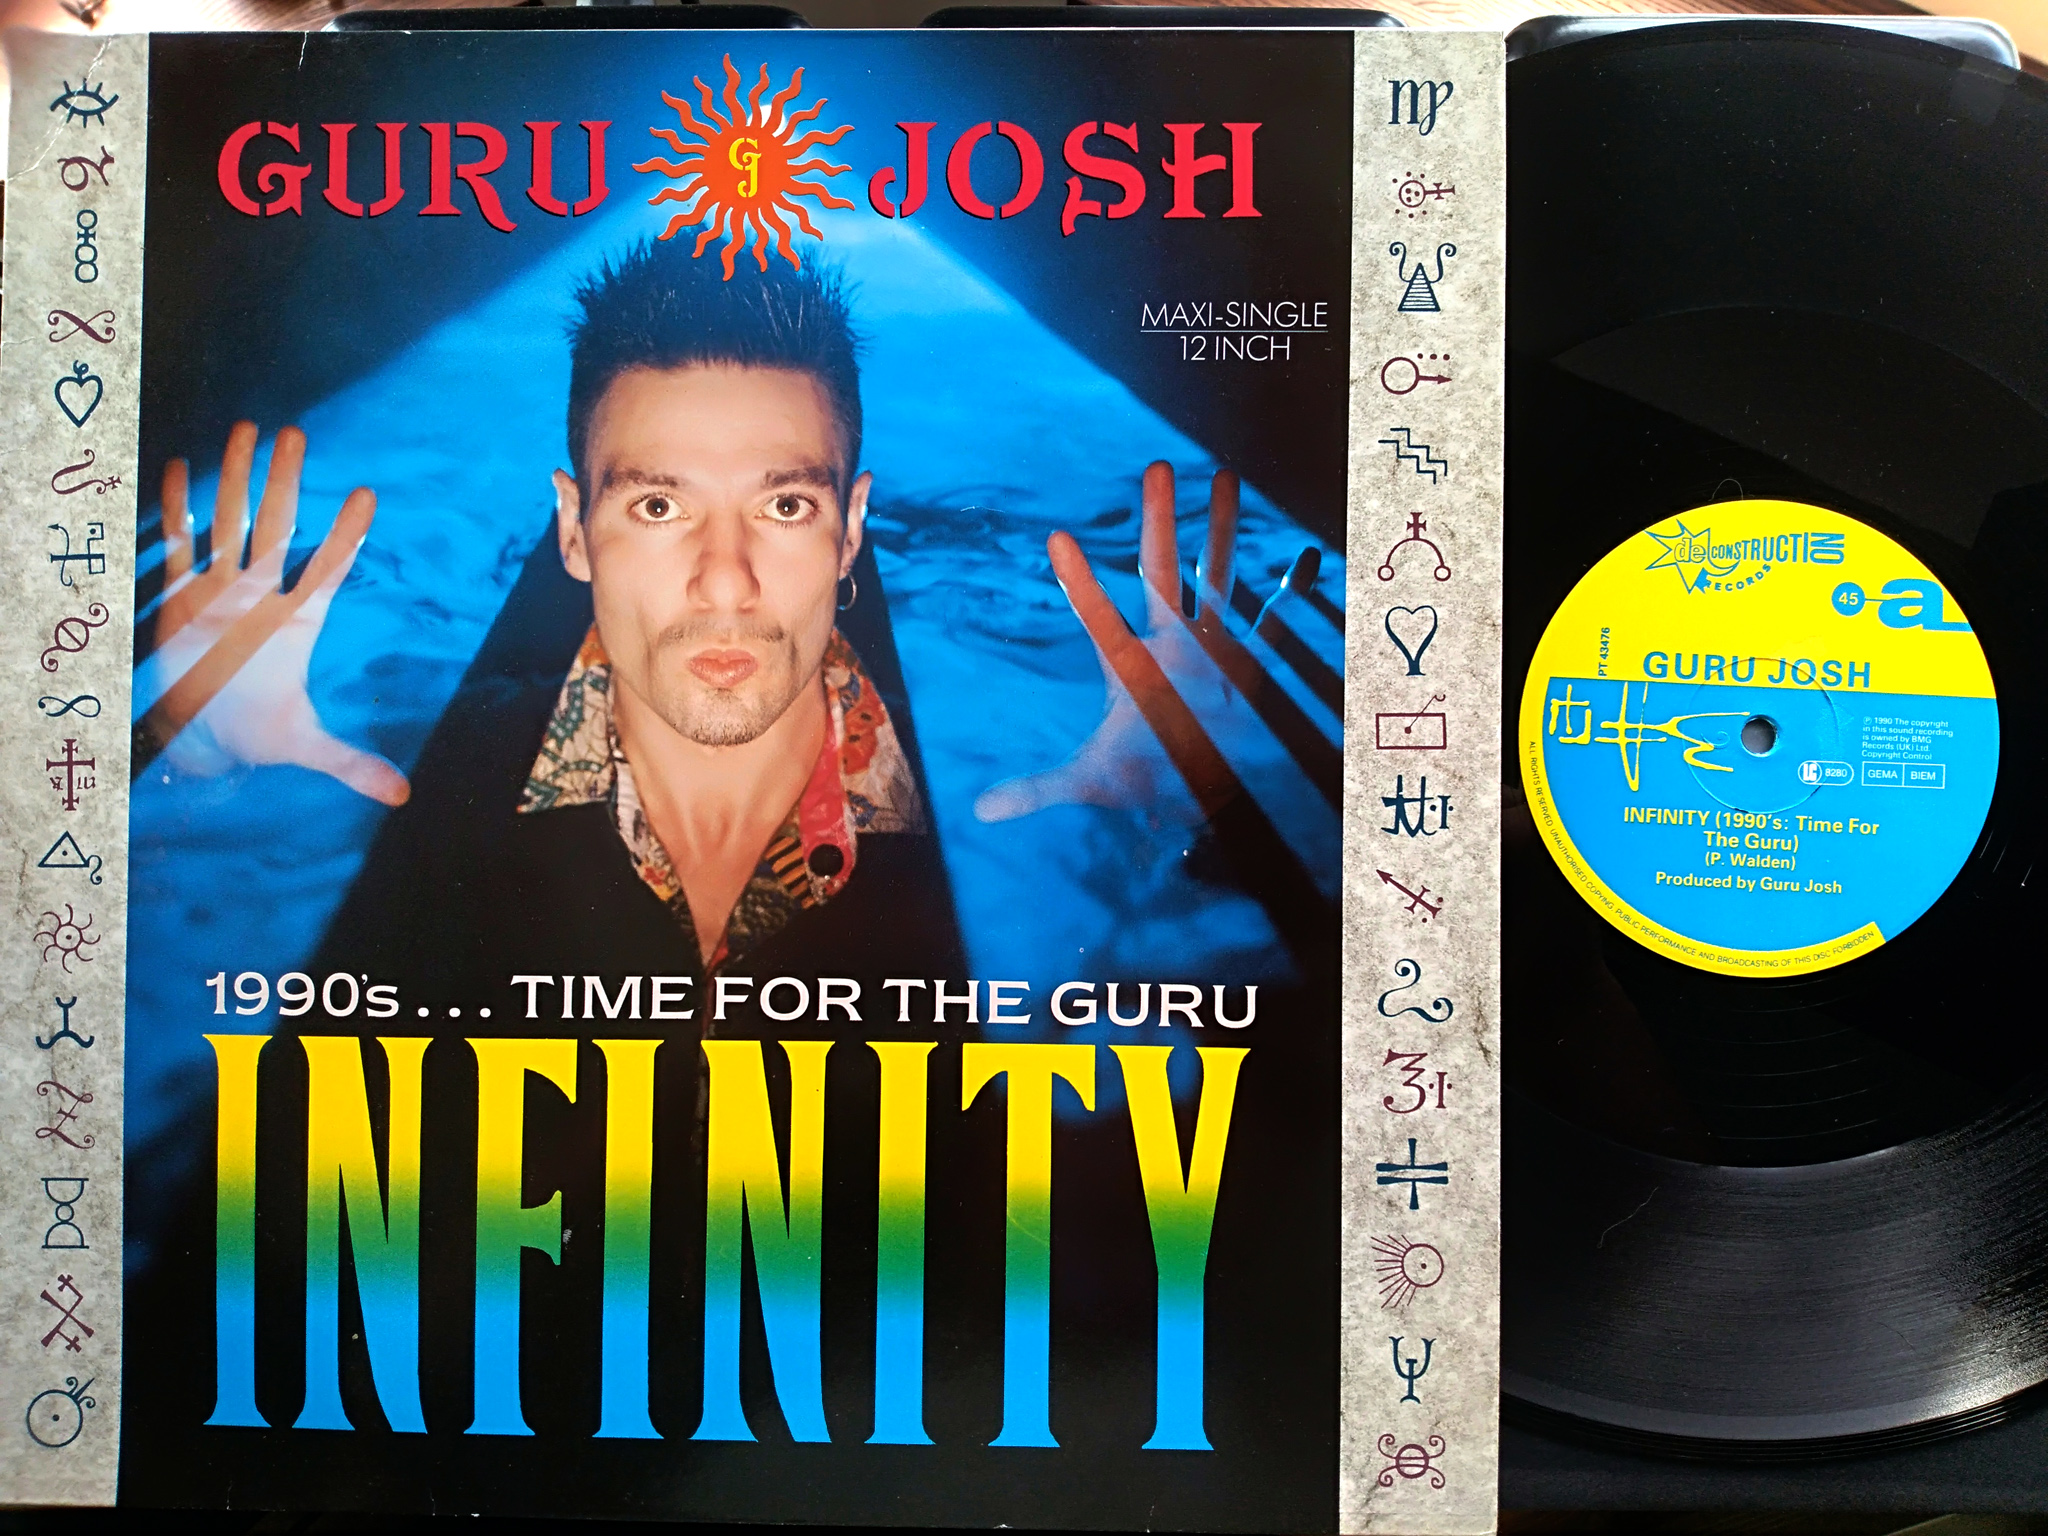 Guru Josh - Infinity (1990s Time For The Guru)